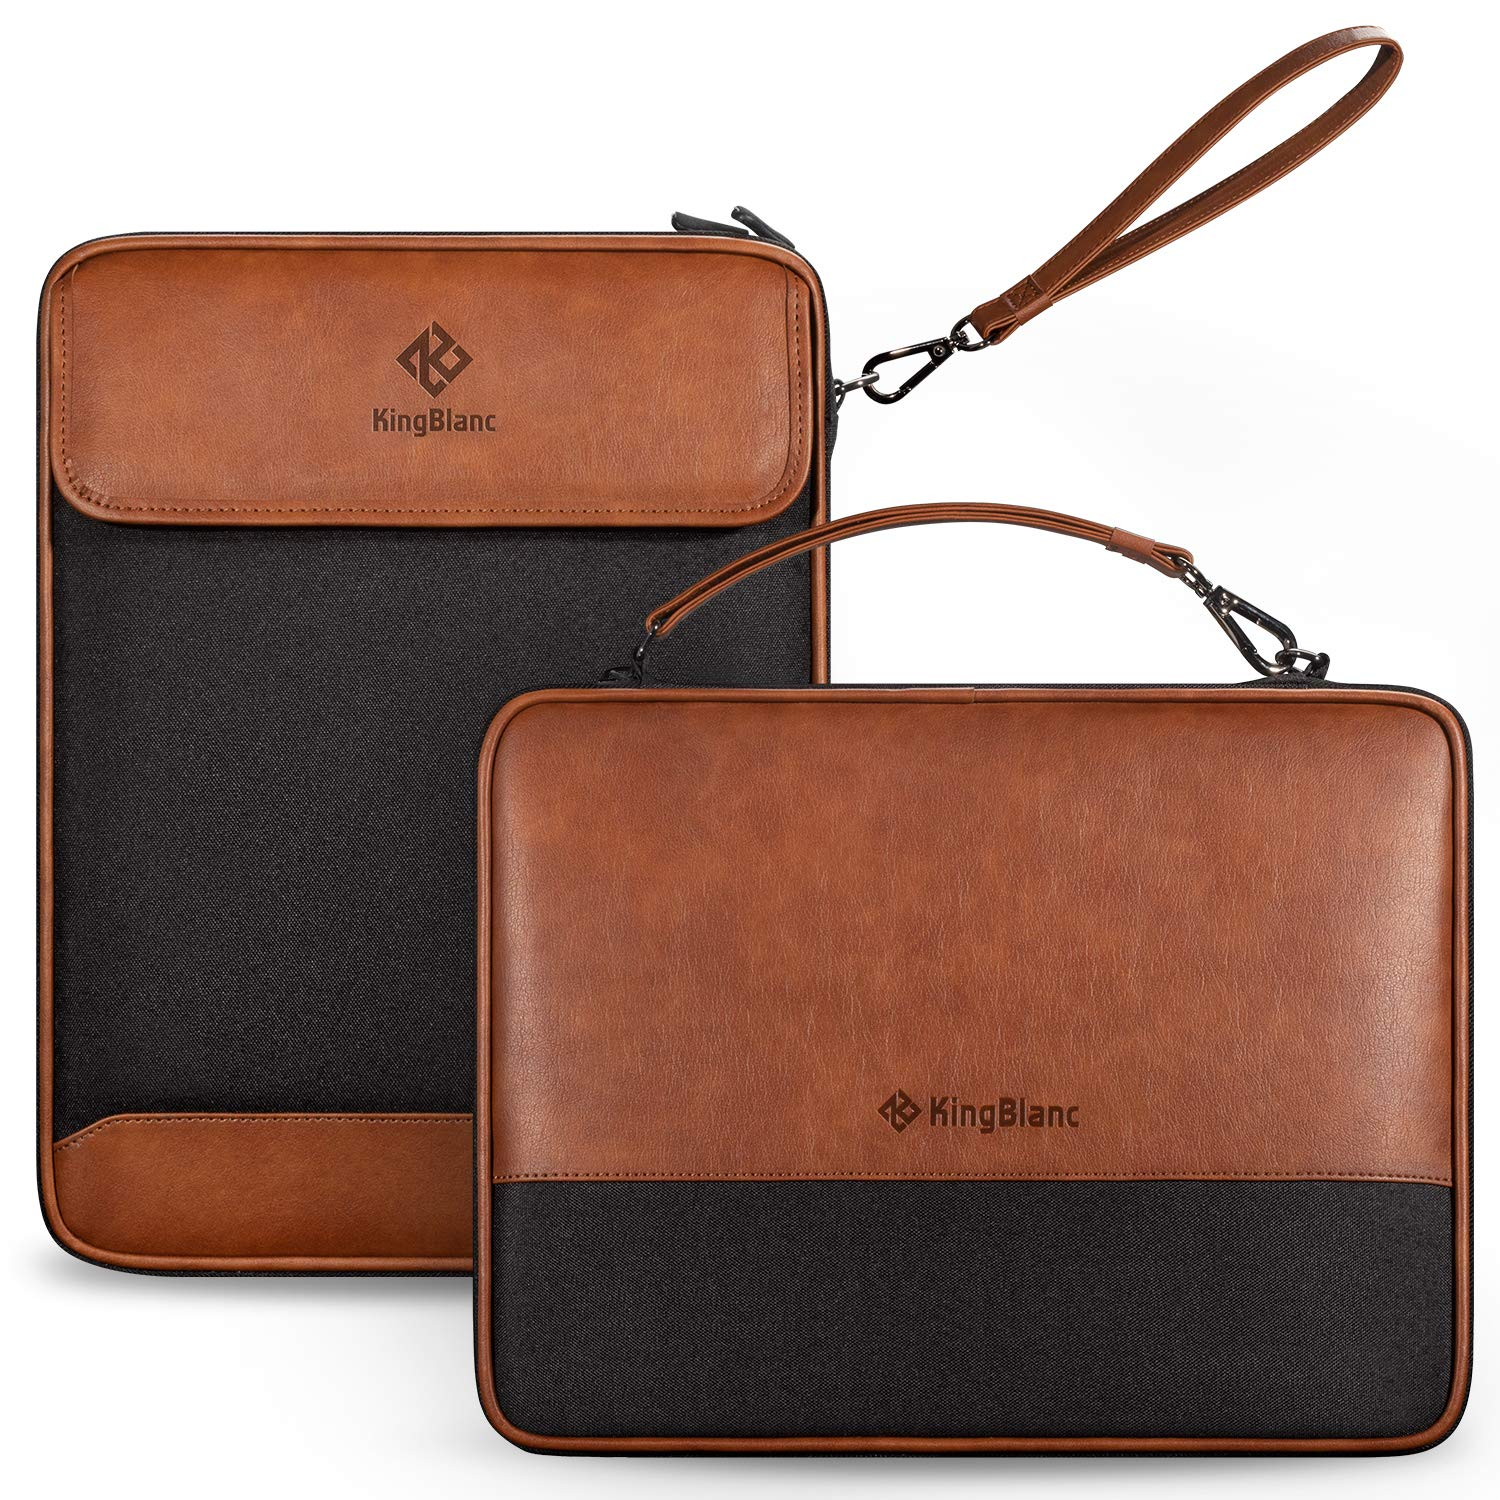 Double-Layer Travel Cable Organizer,PU Leather & Oxford Fabric Electronics Accessories Pouch,Portable Storage Bag for Accessories,USB Cables,Battery,Hard Drive and More